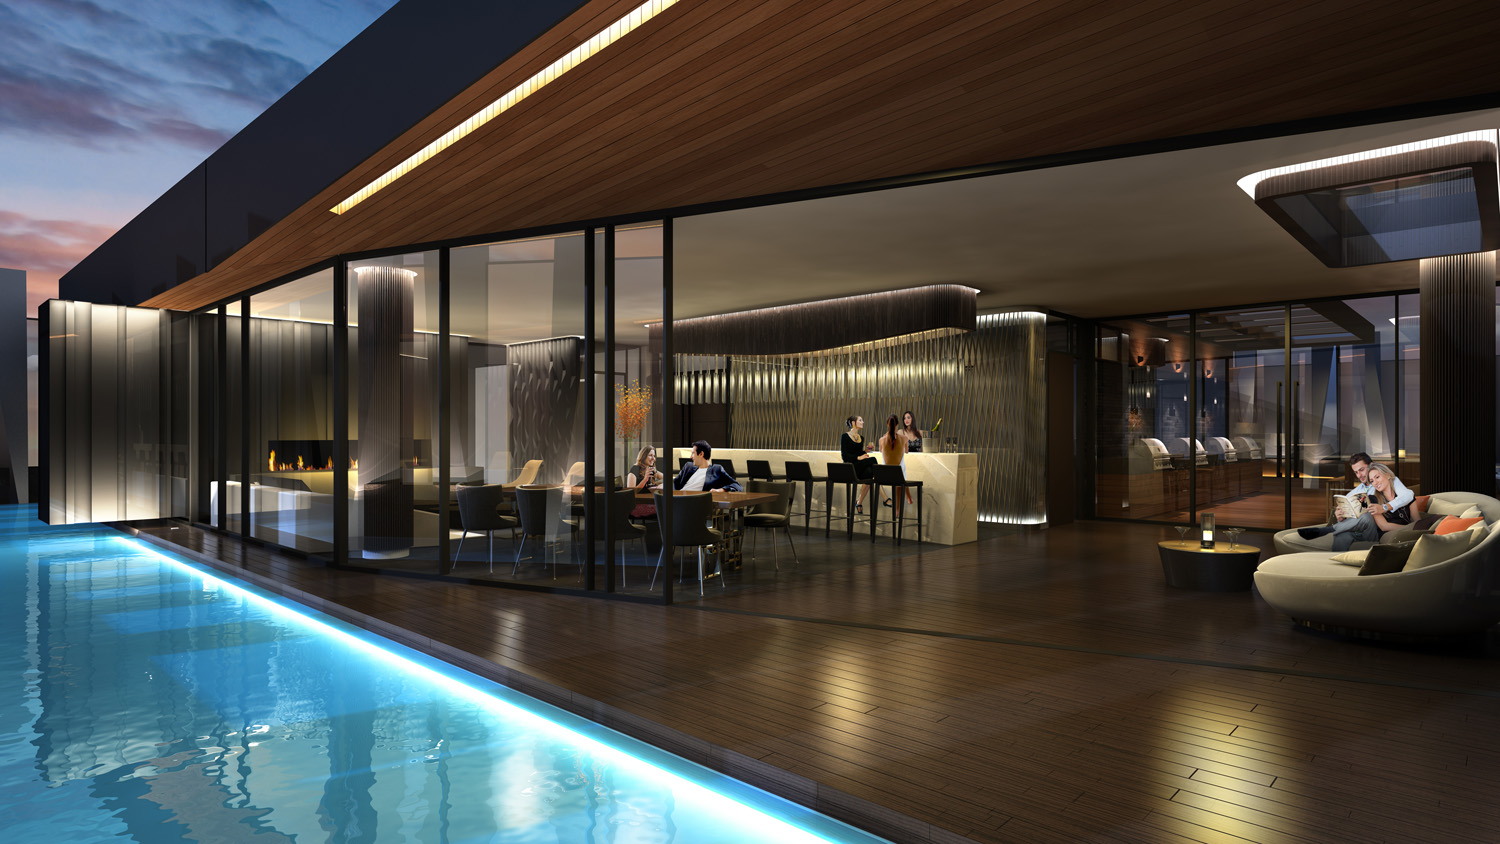 Outdoor Bar + Lounge + Pool Condo High Rise Rendering